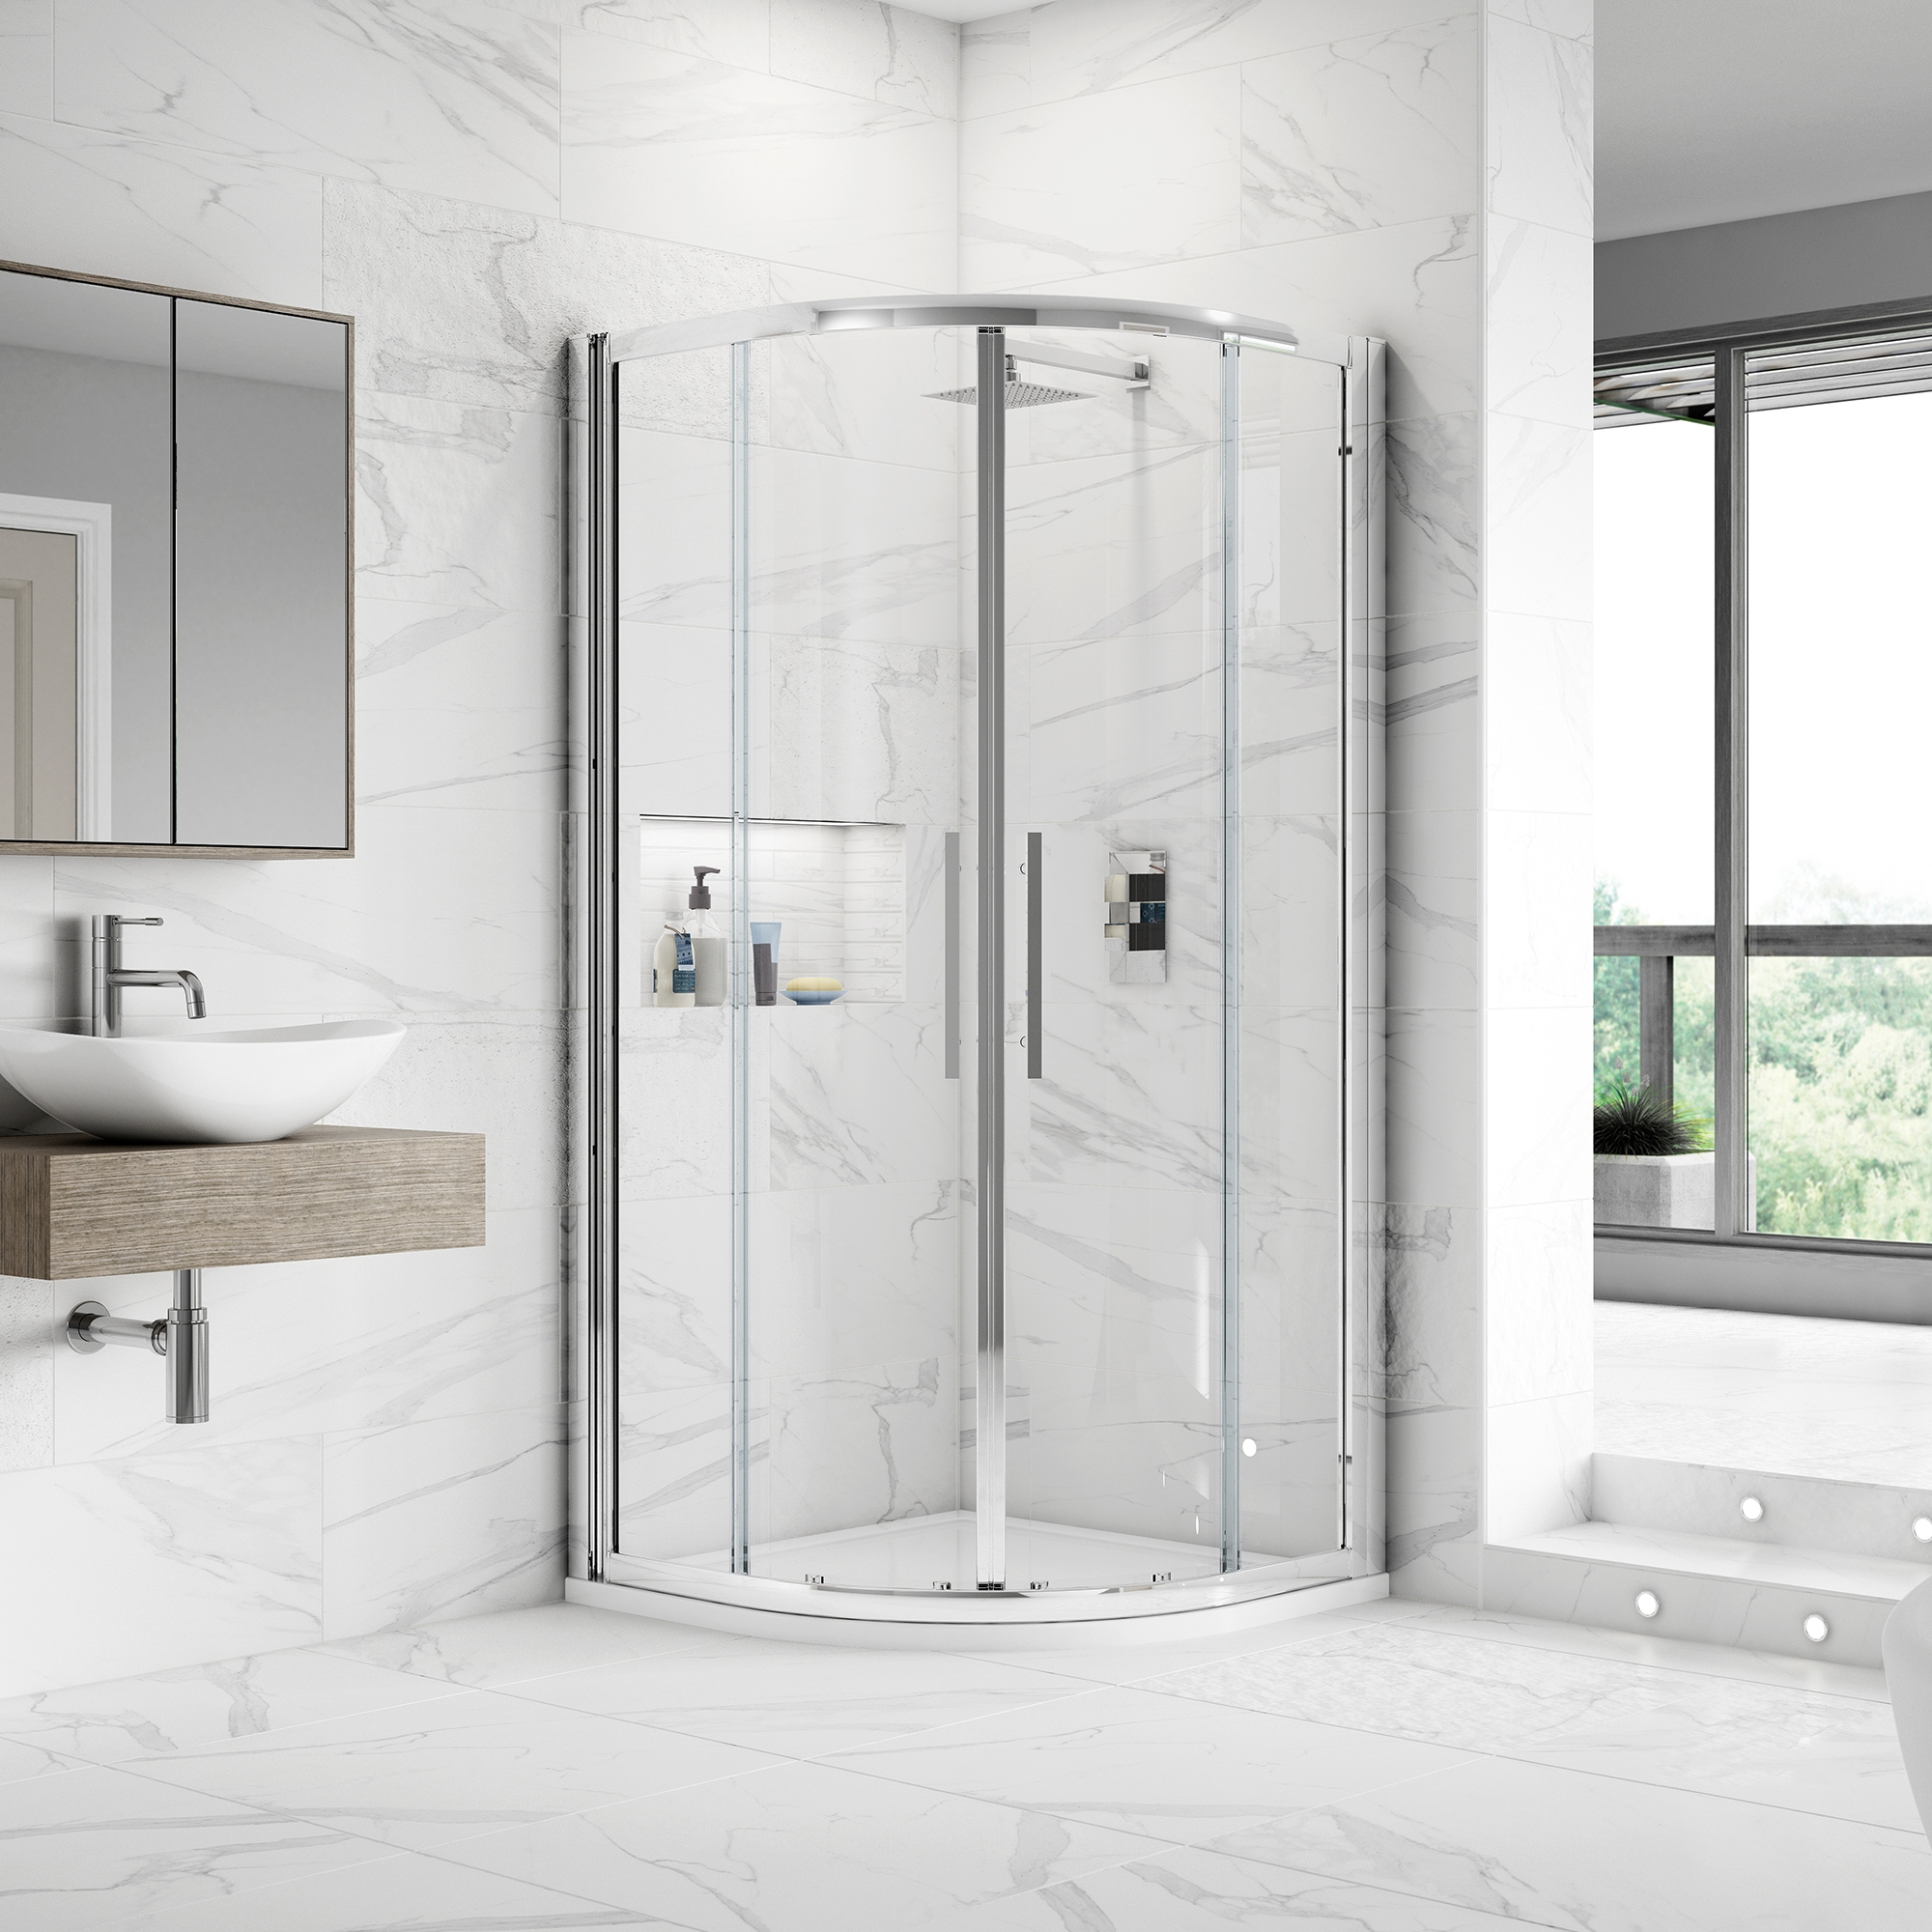 Premier Apex Quadrant Shower Enclosure 900mm x 900mm with Shower Tray - 8mm Glass